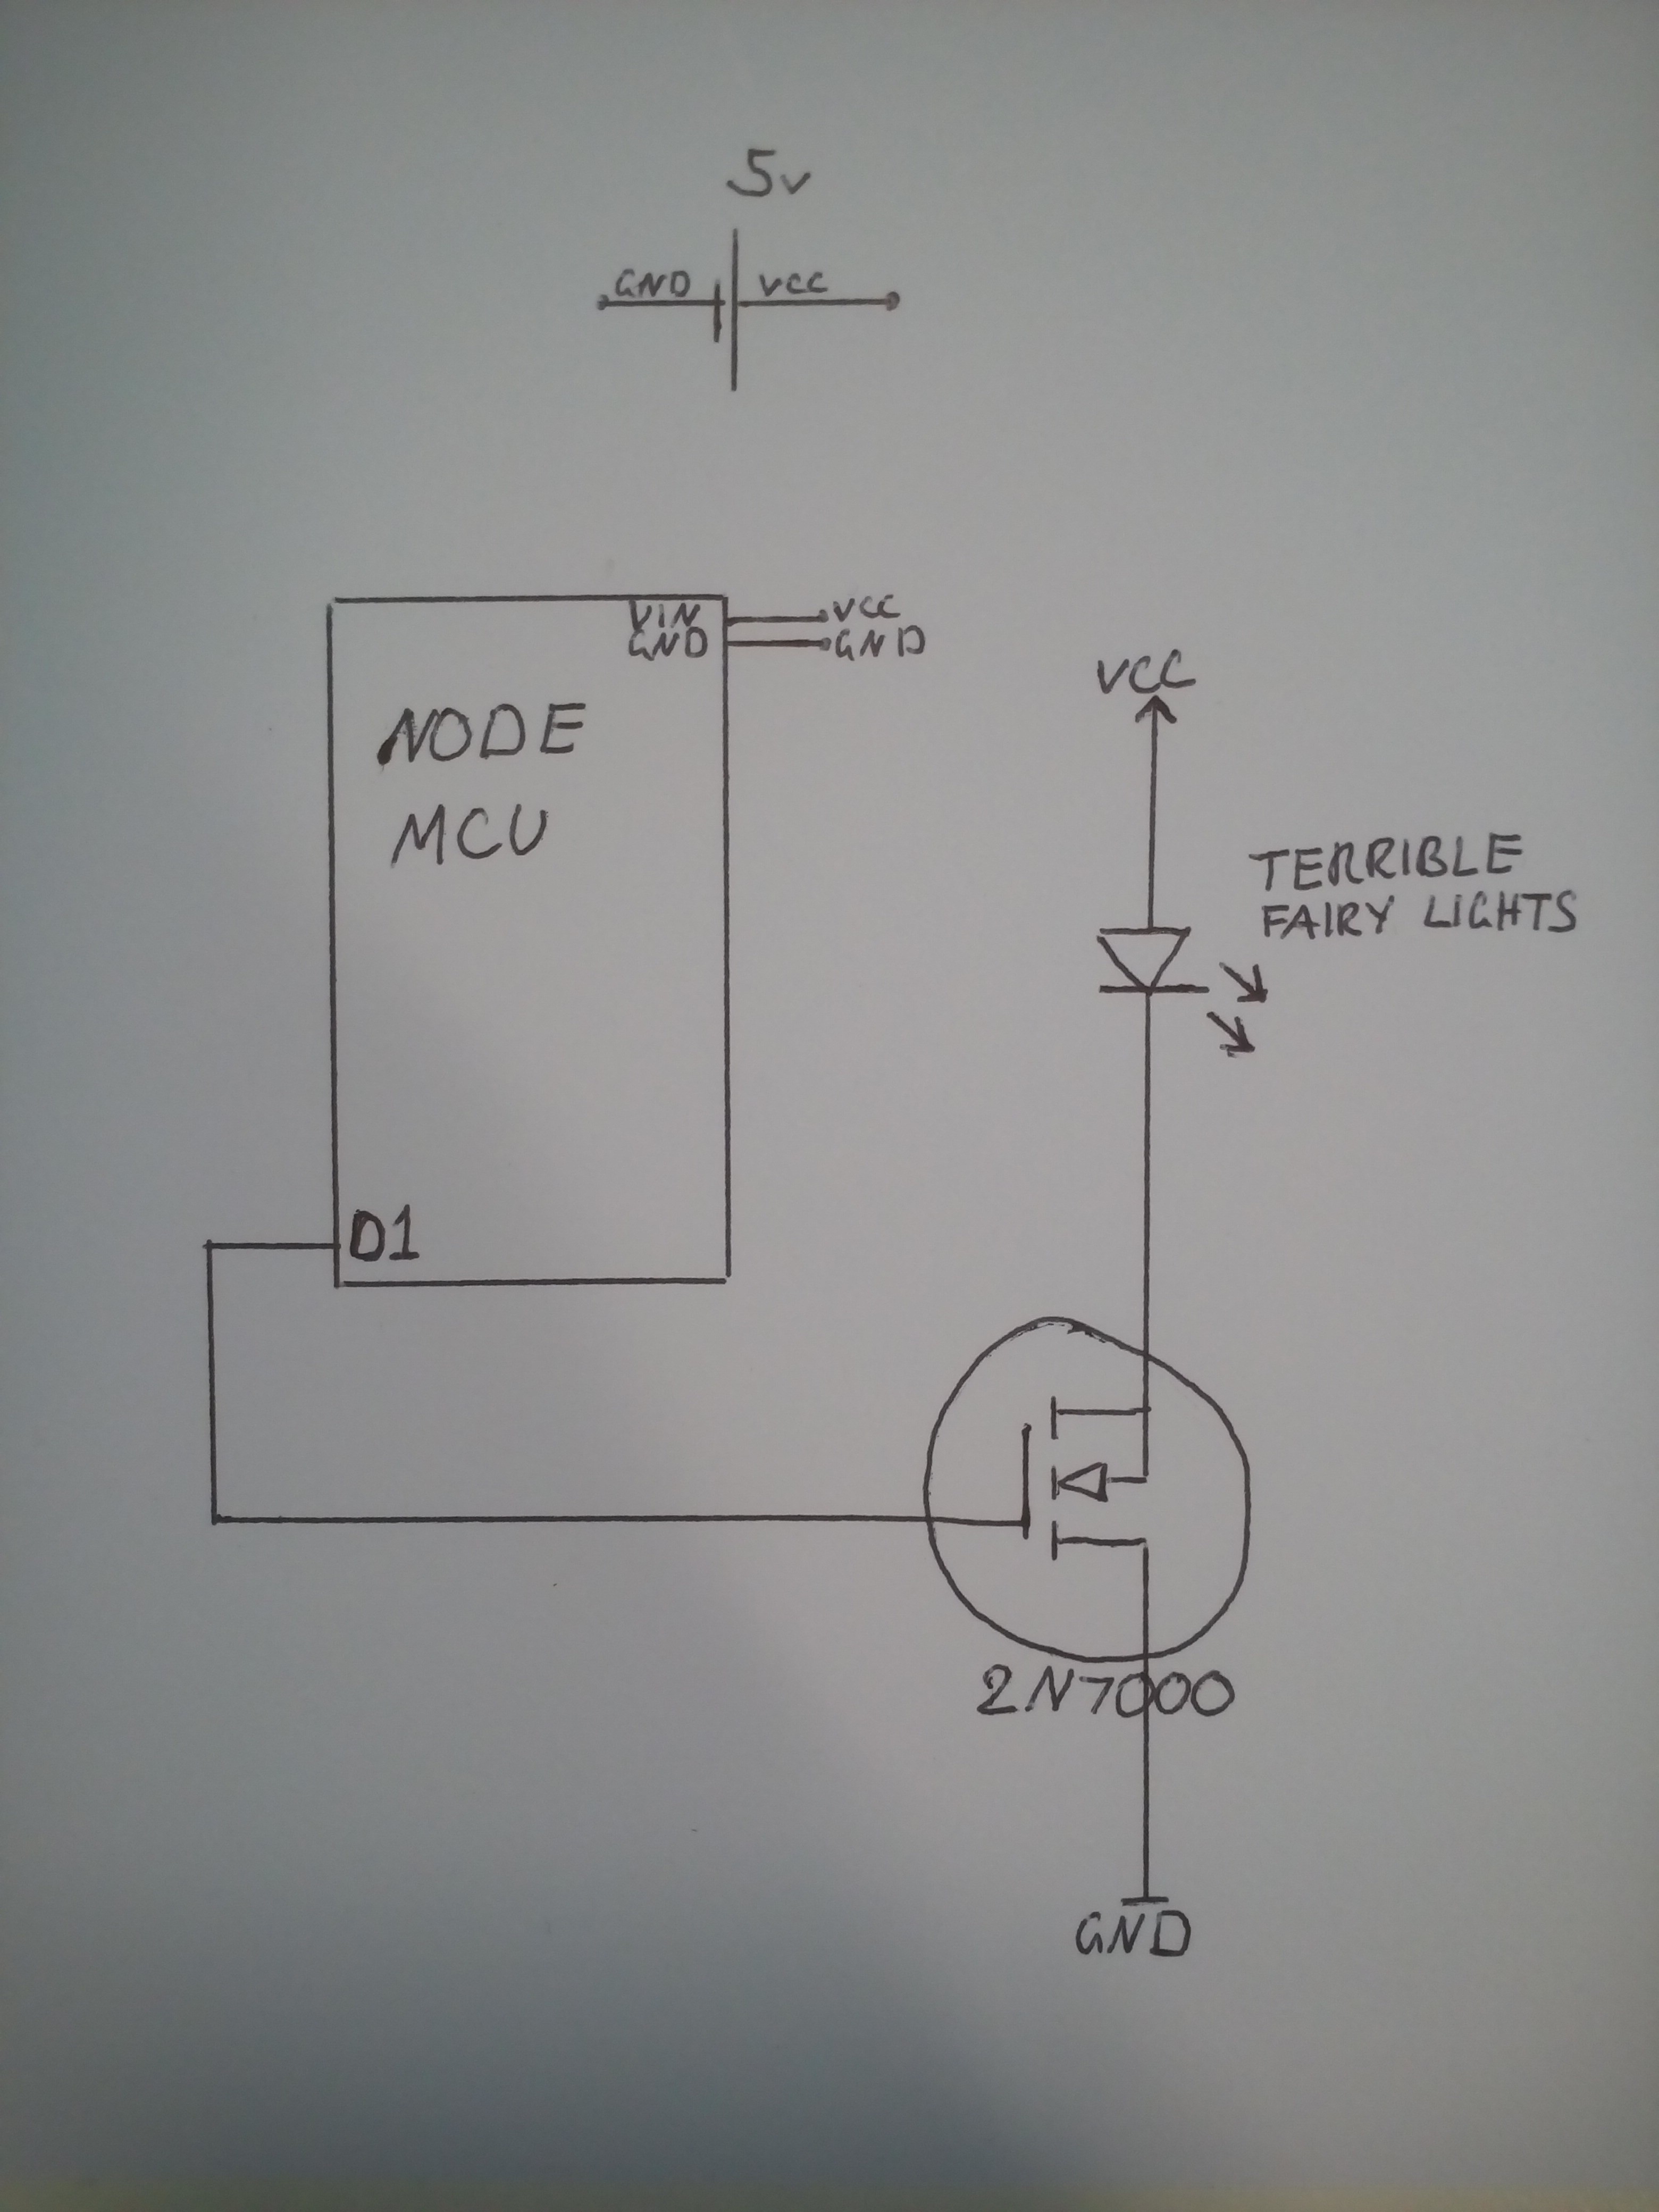 Wi Fi Christmas Lights Led String Light Wiring Diagram In Addition Heres A Hand Drawn Gloomy Circuit Schematic